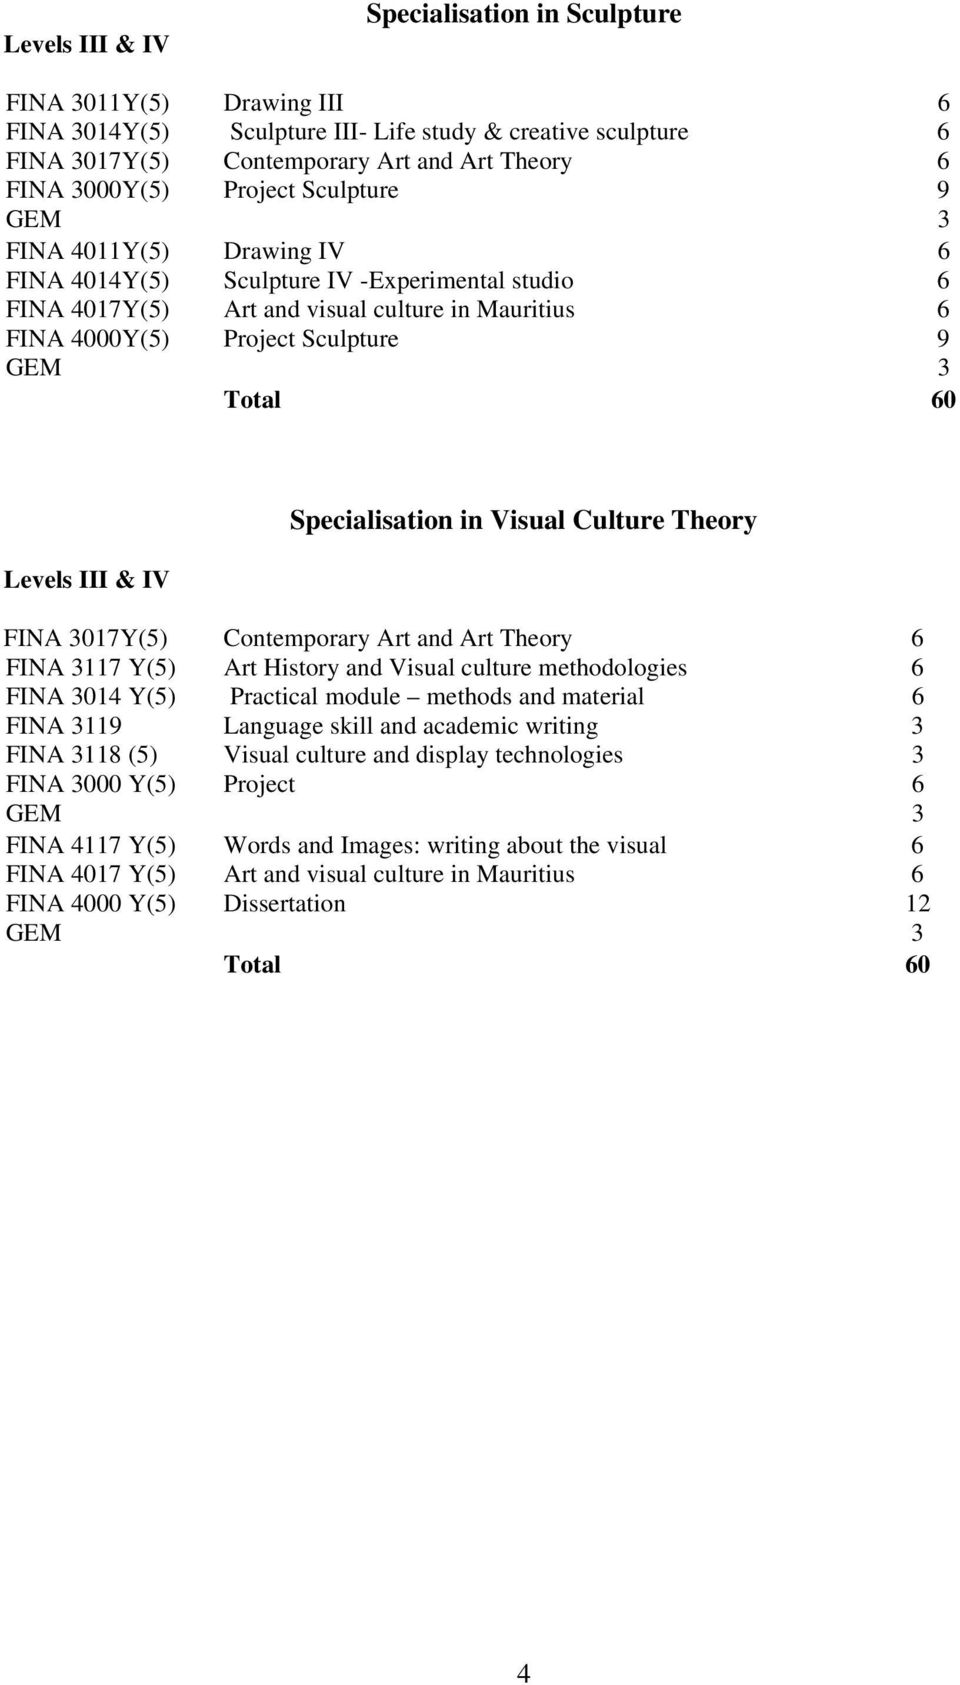 Specialisation in Visual Culture Theory FINA 3017Y(5) Contemporary Art and Art Theory 6 FINA 3117 Y(5) Art History and Visual culture methodologies 6 FINA 3014 Y(5) Practical module methods and